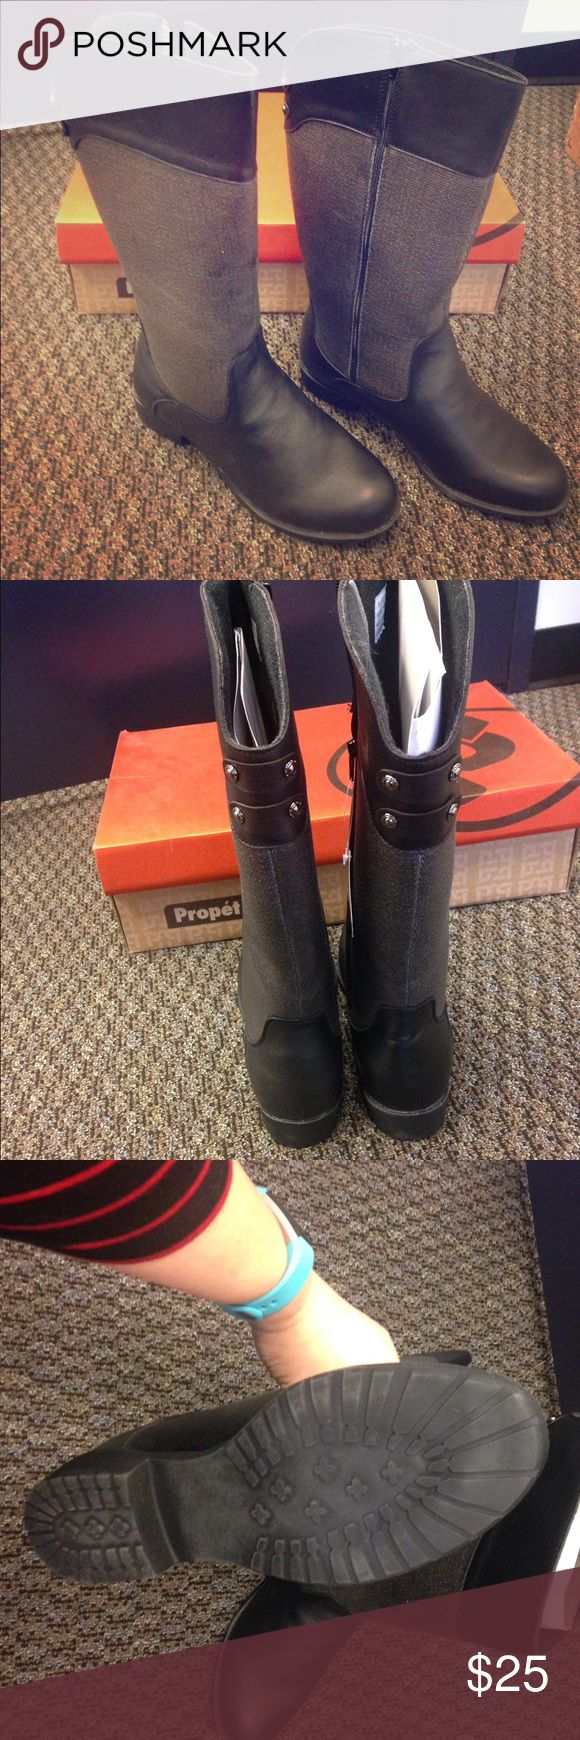 NWT Women's weather proof boot Boots by Propet  Size 9.5, wide width (footbed and calf) Waterproof!  Made of Scotchgard leather and waxed-canvas  Women's Belmont black/weathered grey boot.   Are mid-calve length. Propet Shoes Winter & Rain Boots